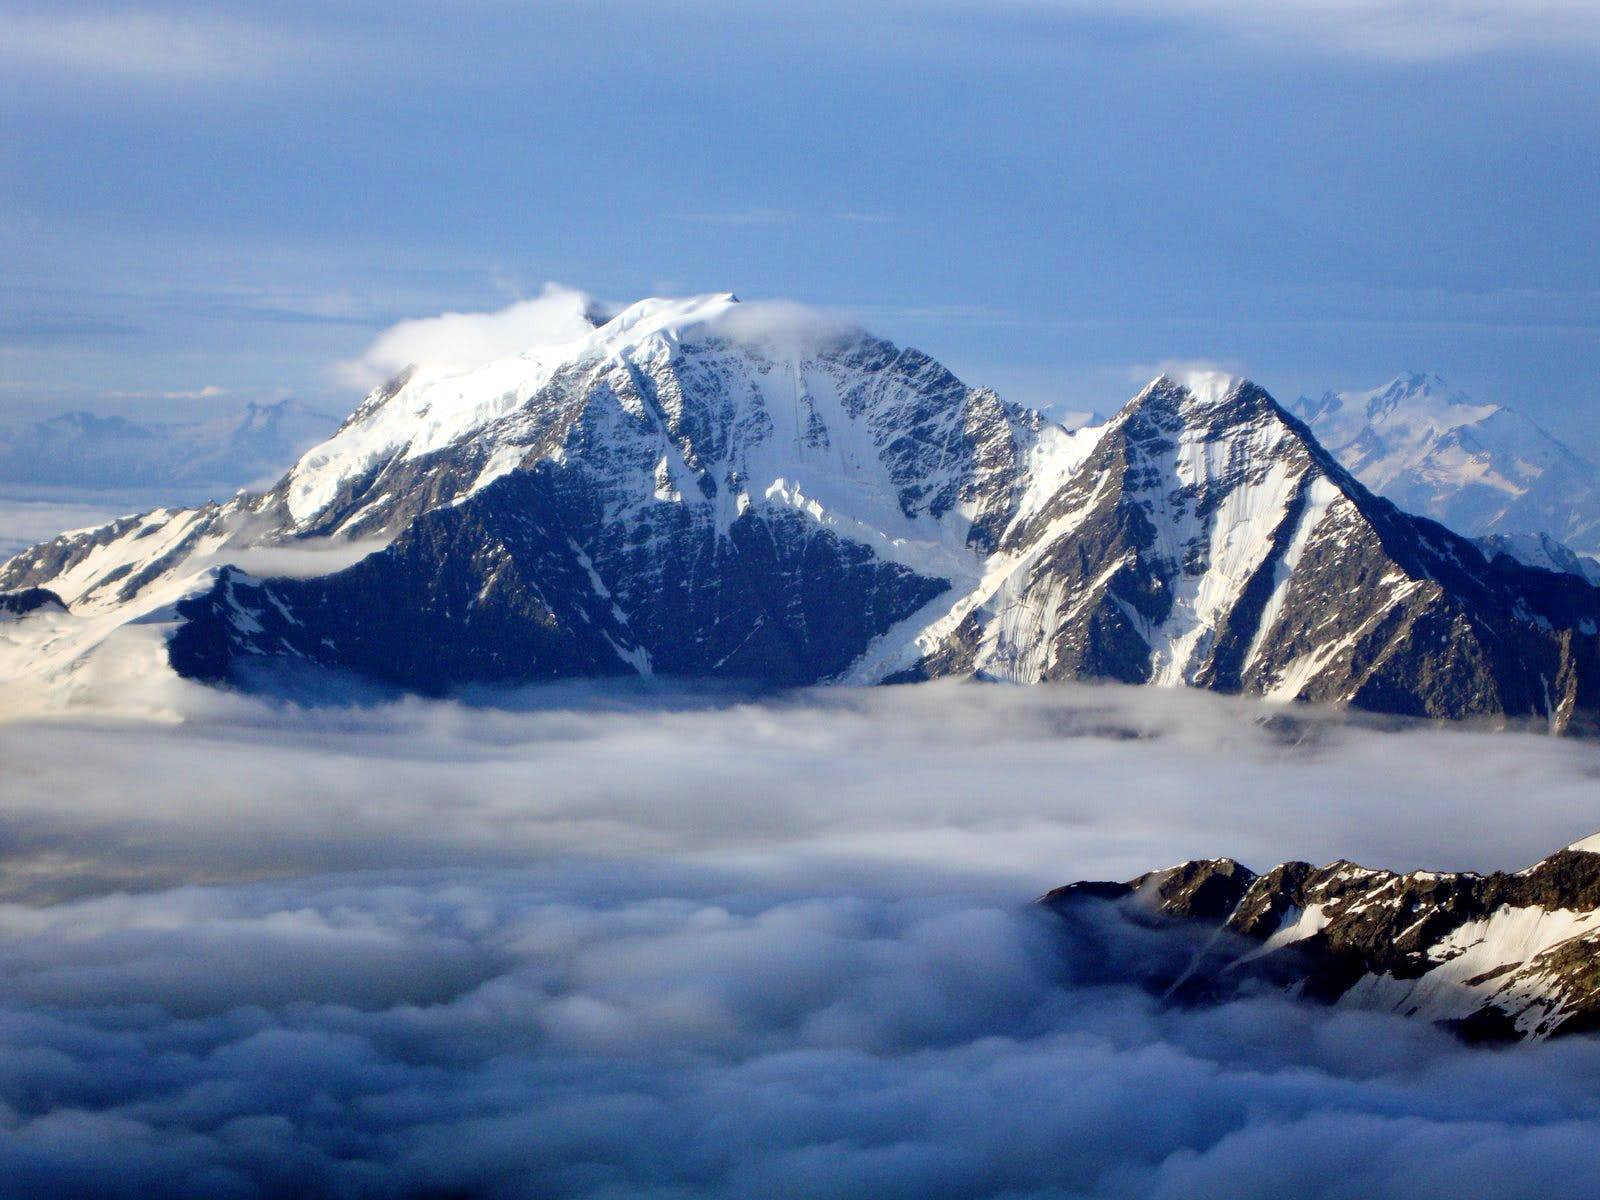 Only mountains can be better than the mountains-Caucasus